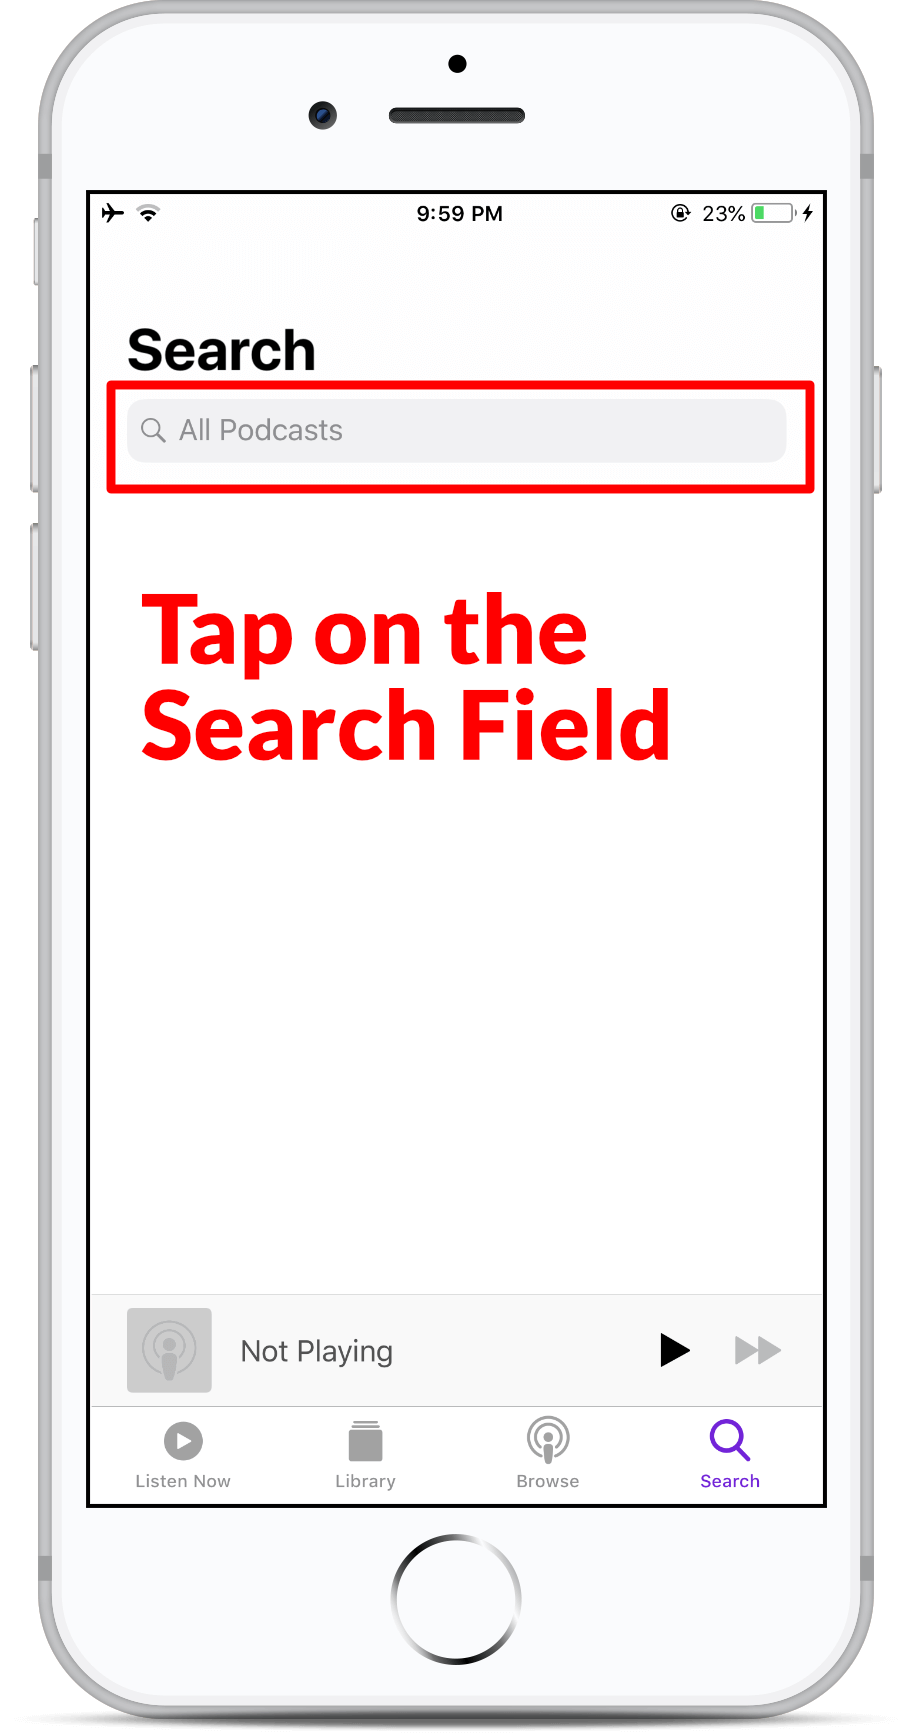 Subscribe on Apple Podcast - Step 3